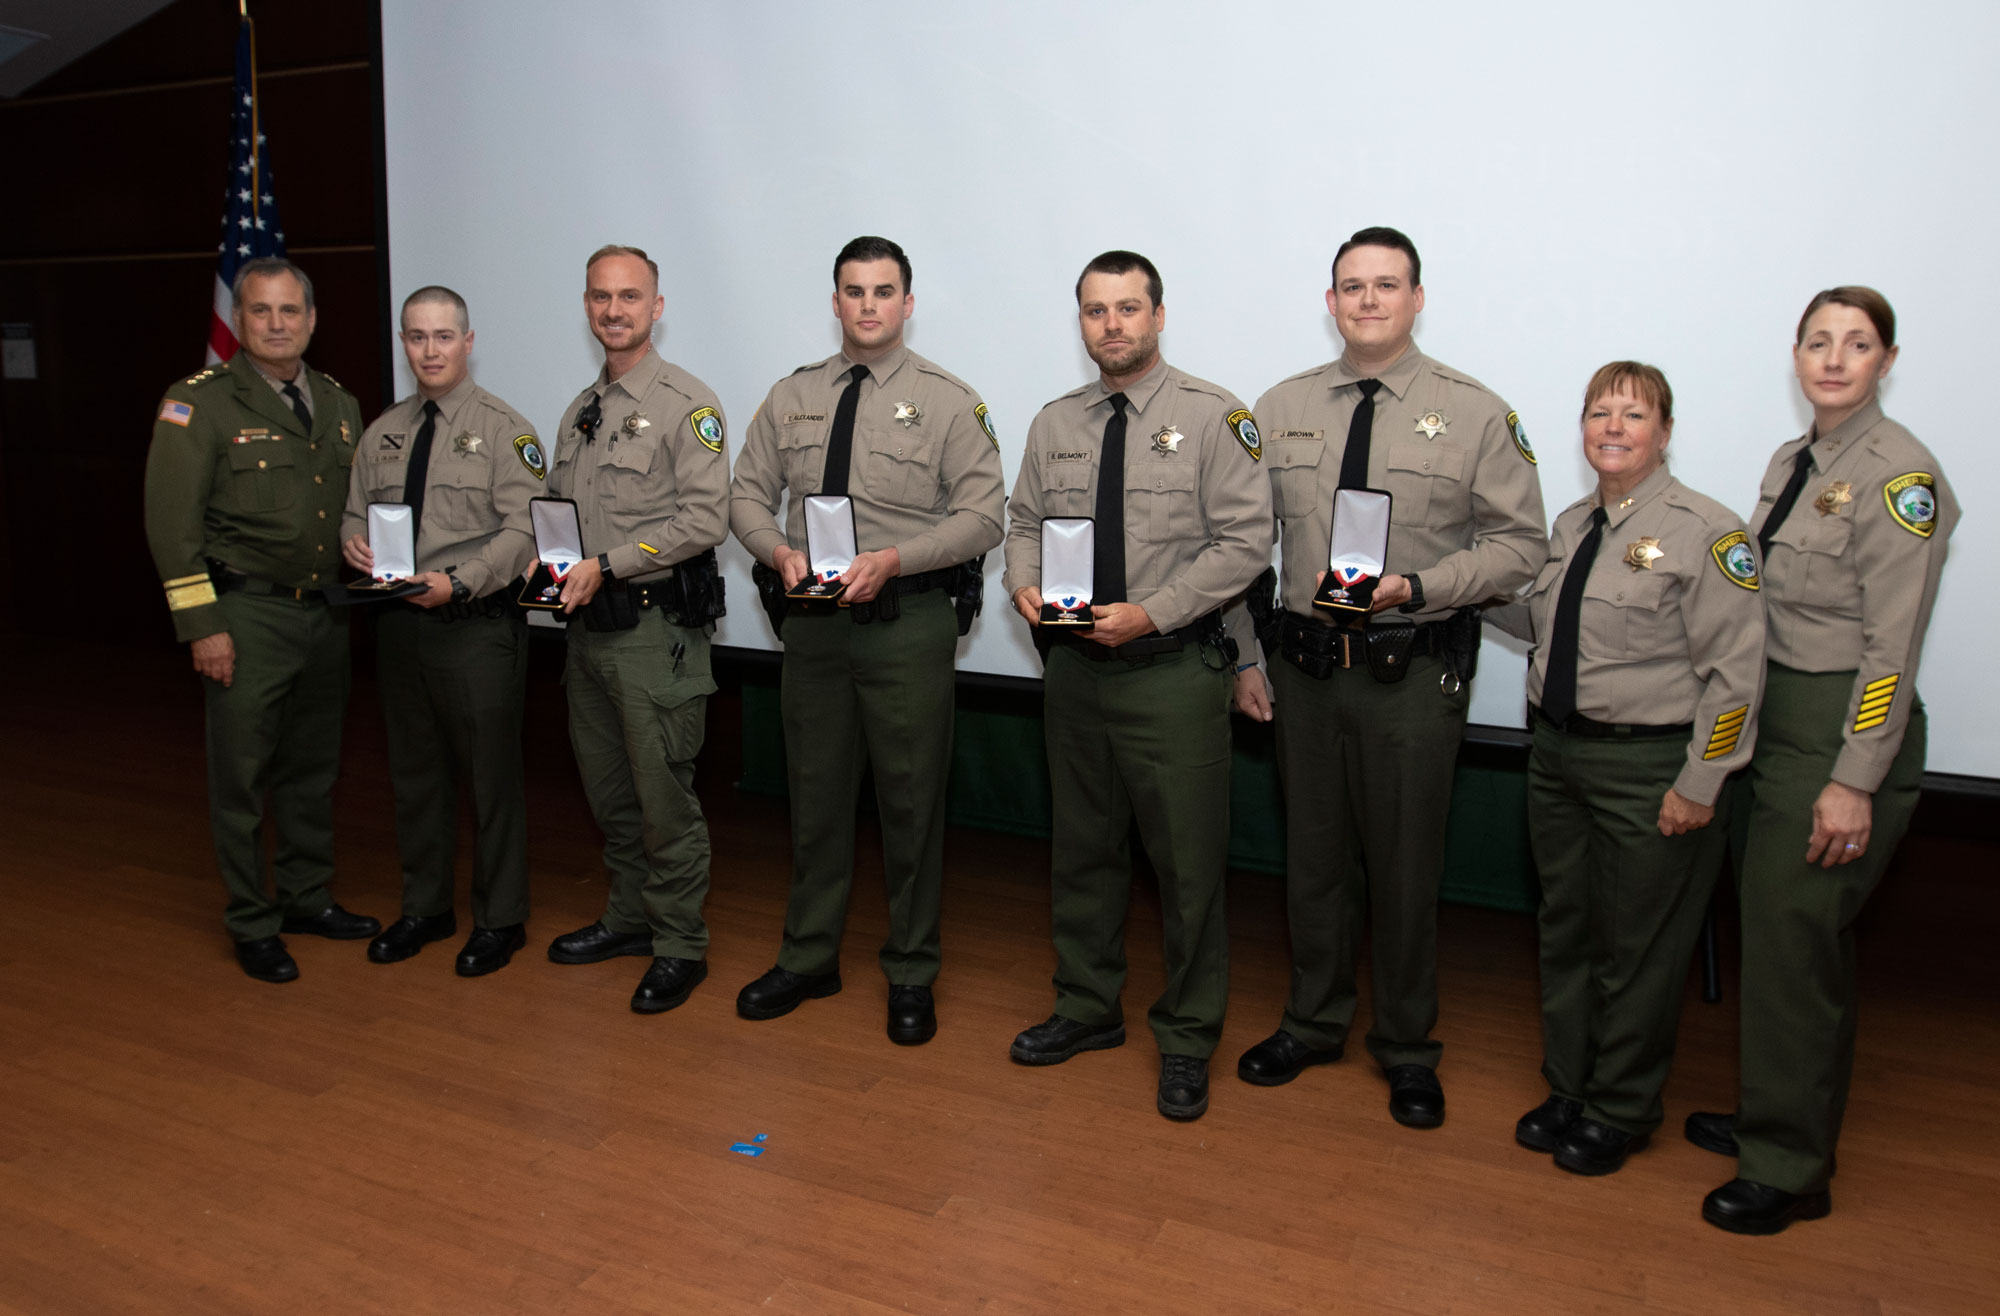 Sheriff Roberts; Deputies Olson, Adel, Alexander, Belmont and Brown; Undersheriff Brandenburg; and Chief Deputy Morrison.